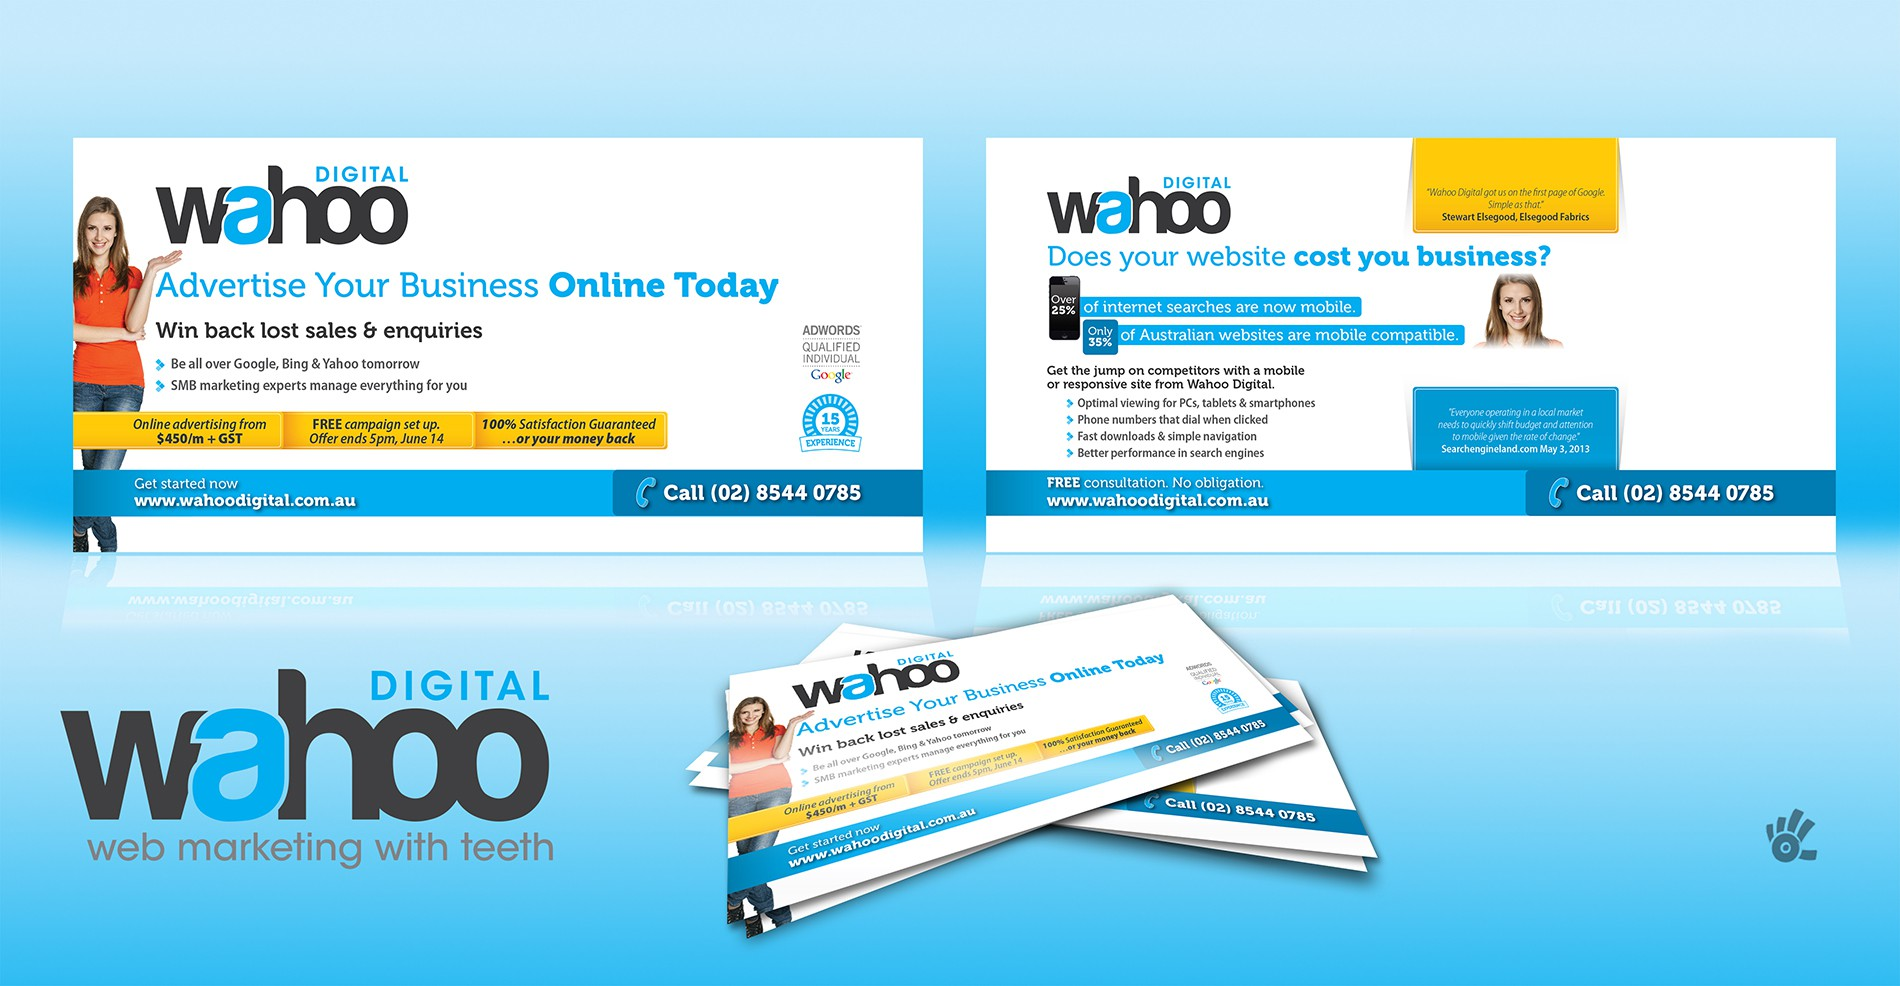 New postcard or flyer wanted for Wahoo Digital